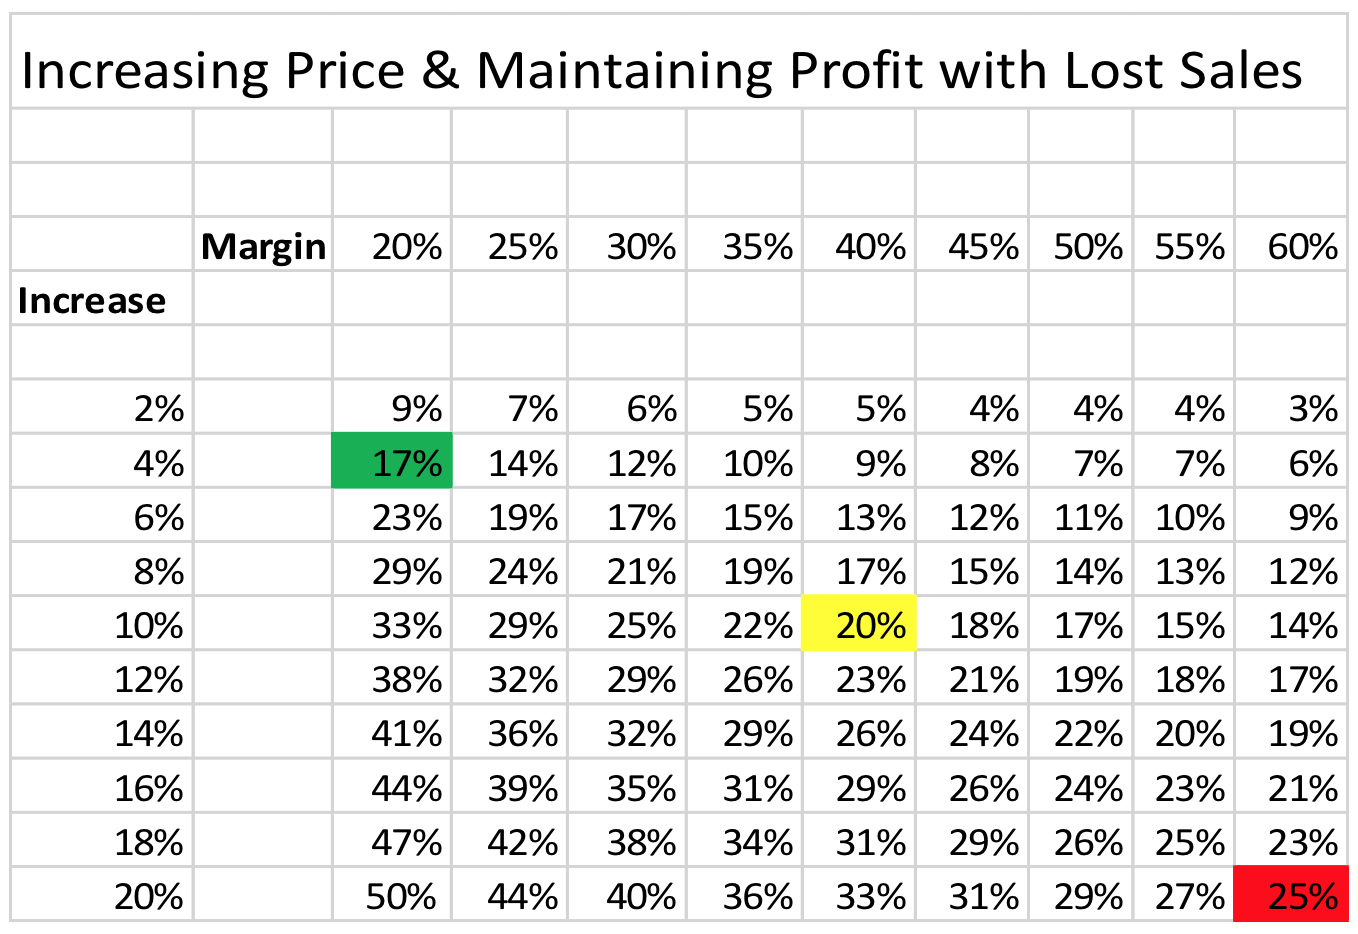 Increasing Price and Maintaining Profit with Lost Sales